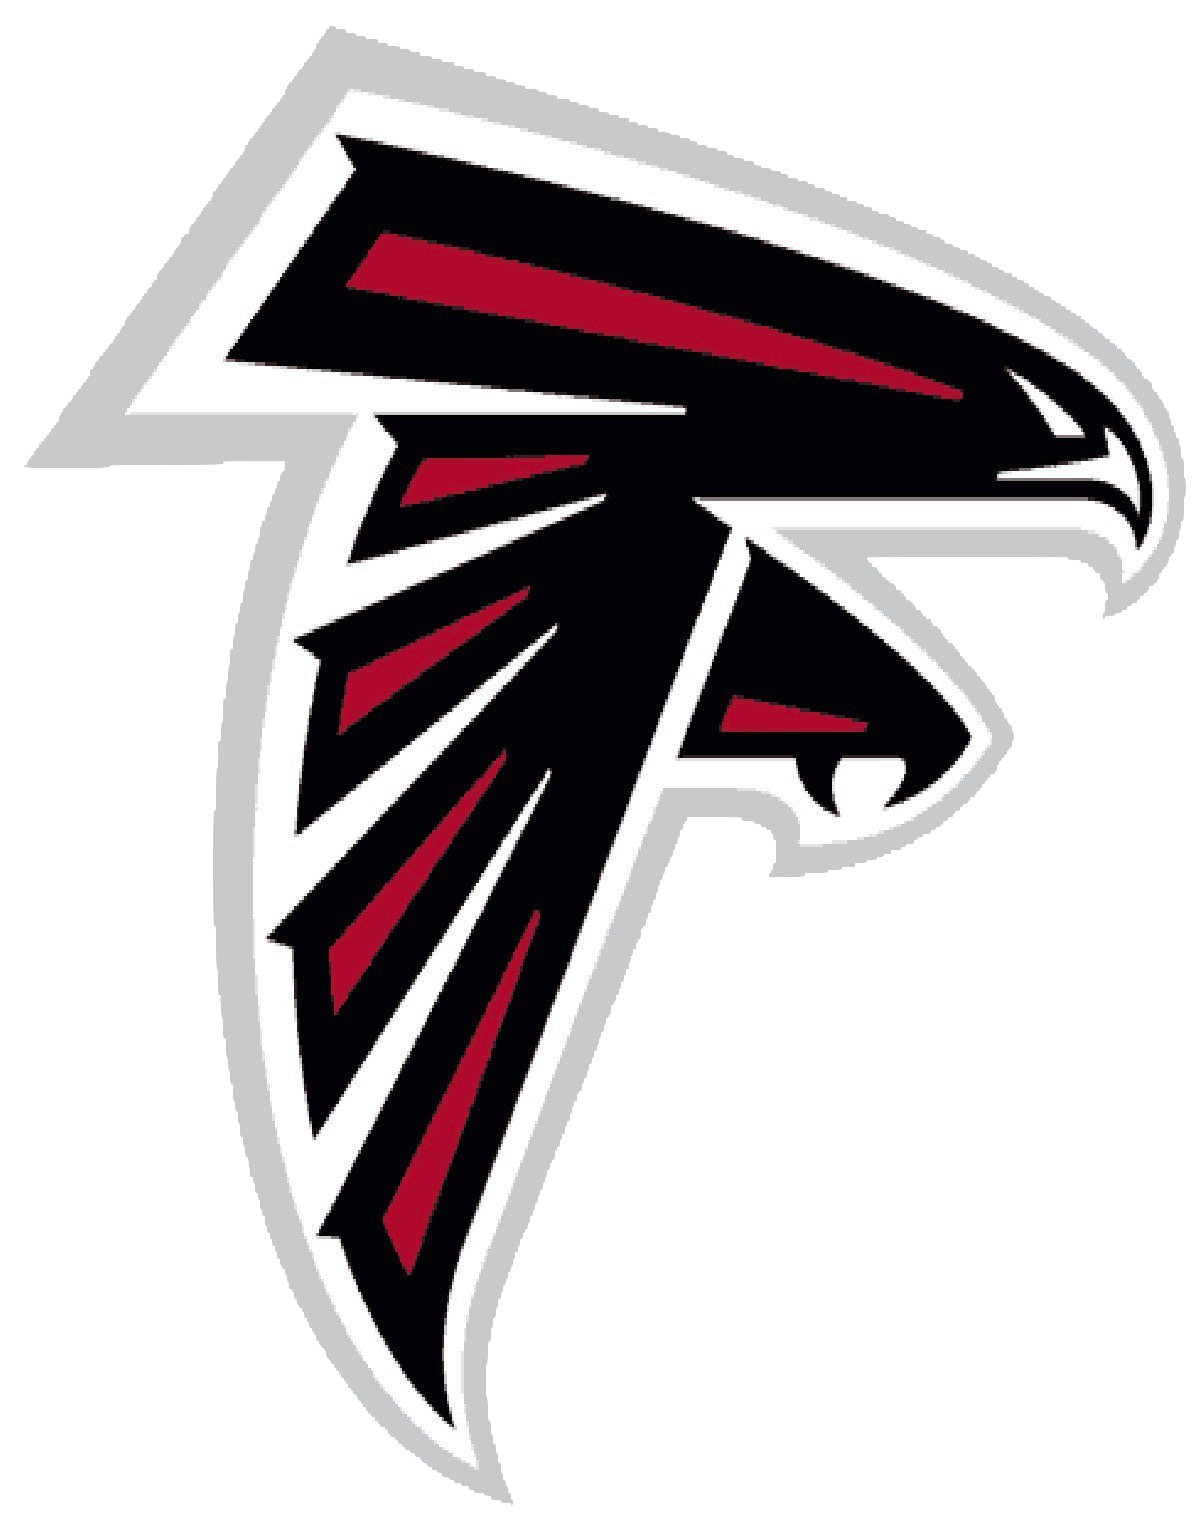 Nfl Watch Atlantafalcons Live Stream Games Online As More Of The Channels Broadcasting The Games O Atlanta Falcons Logo Atlanta Falcons Atlanta Falcons Decal